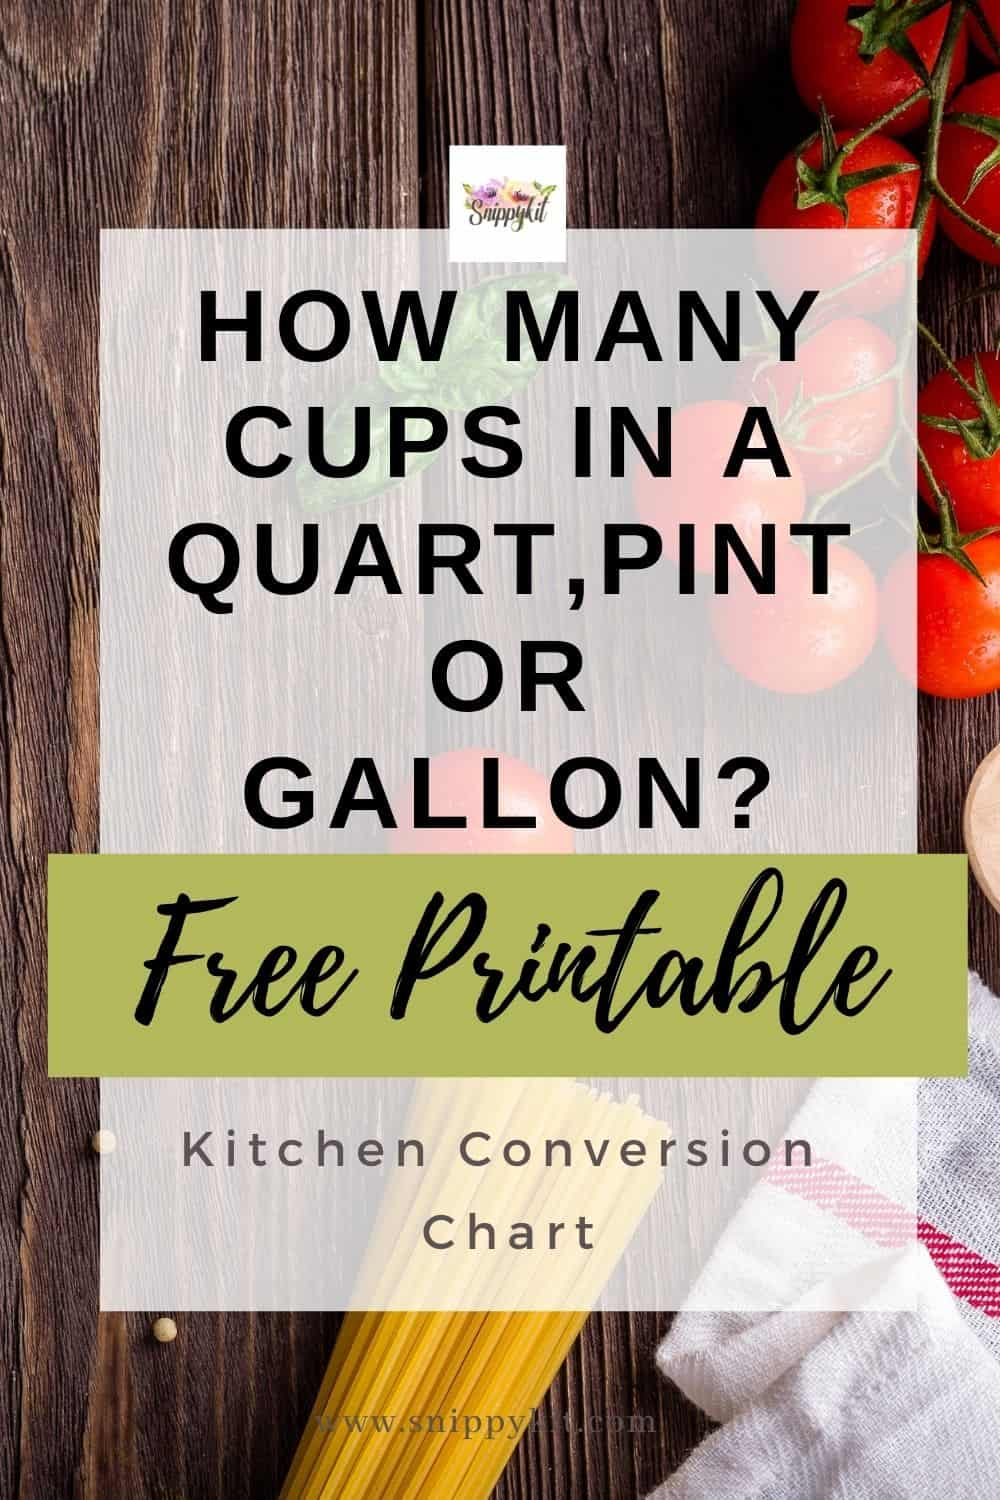 how many cups in a quart, pint, or gallon